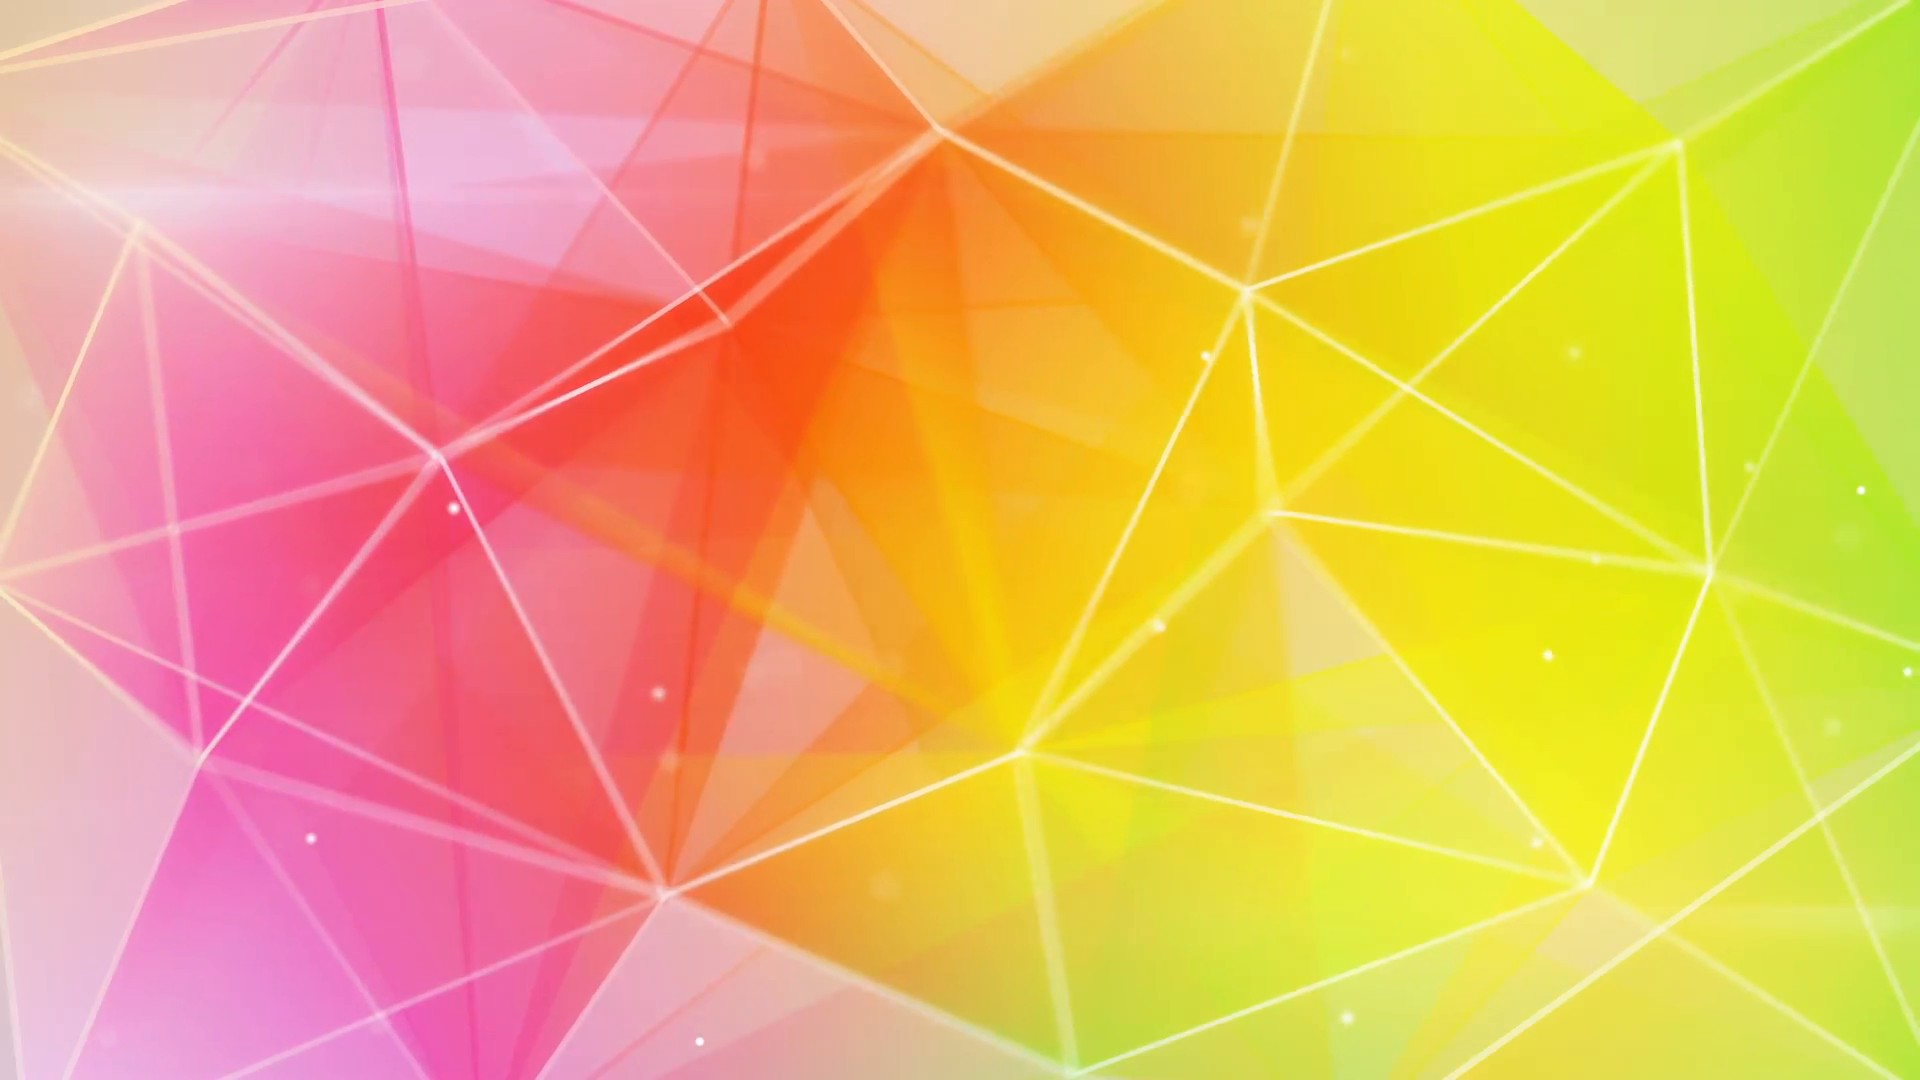 Colorful background Download free cool full HD wallpapers for